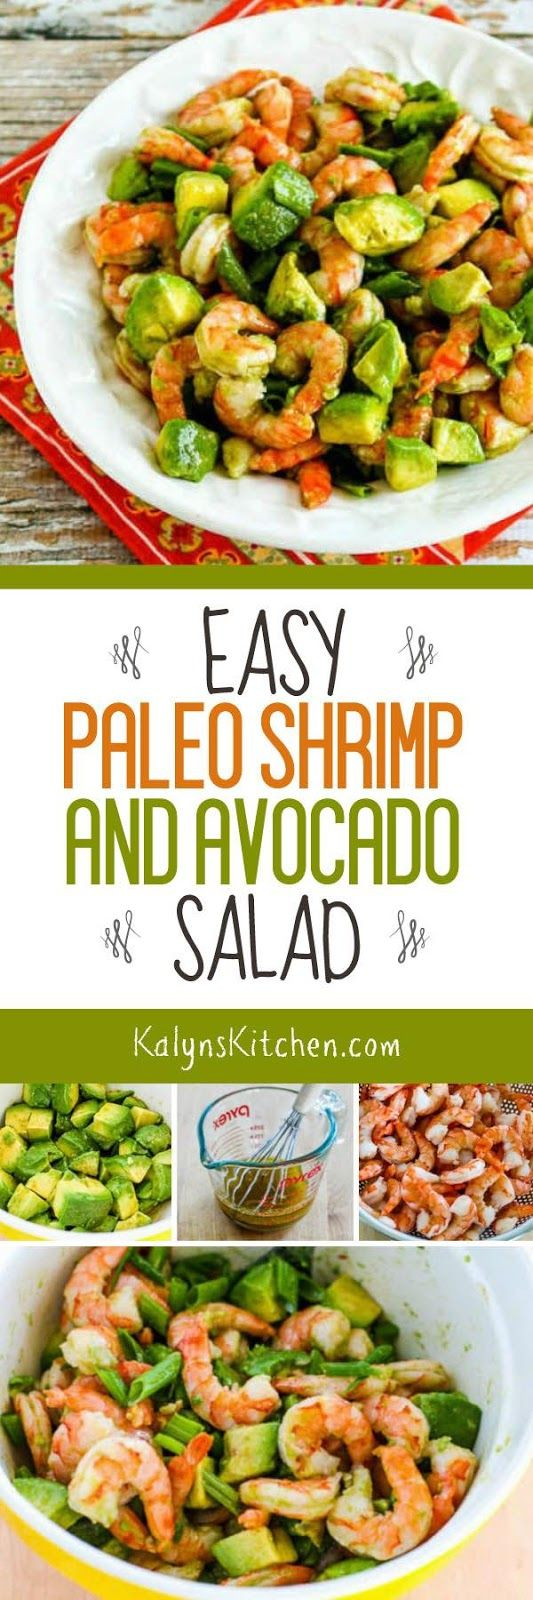 Easy Paleo Shrimp and Avocado Salad is also Whole 30, Low-Carb, Keto, Low-Glycemic, Dairy-free, and Gluten-free and this is delicious any time of year! [found on KalynsKitchen.com]